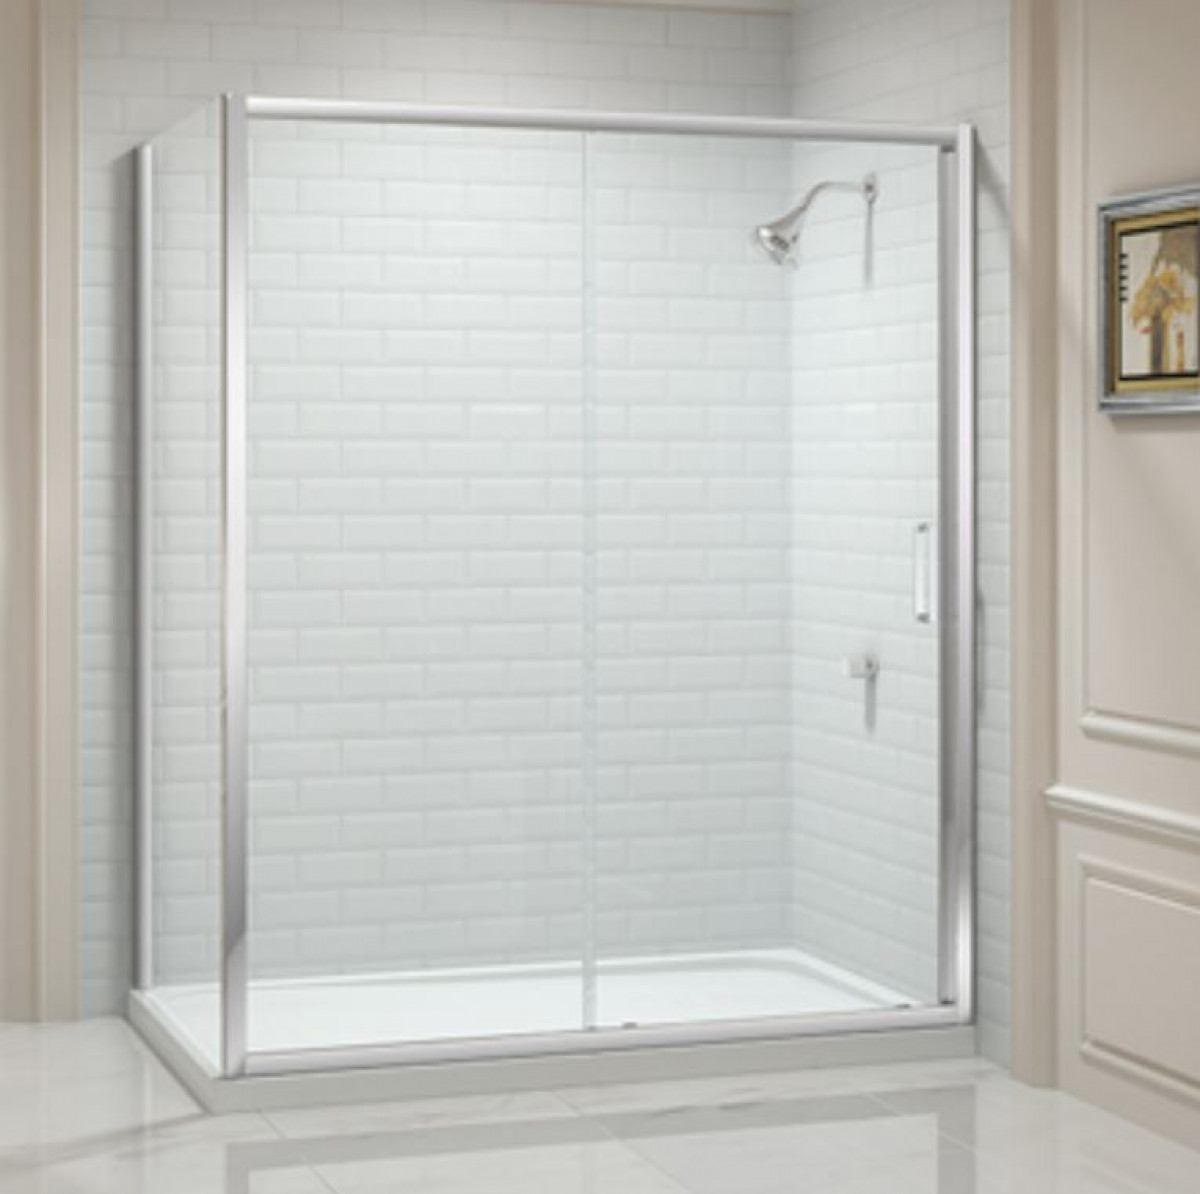 Merlyn 8 series 1000mm sliding shower door for 1000mm shower door